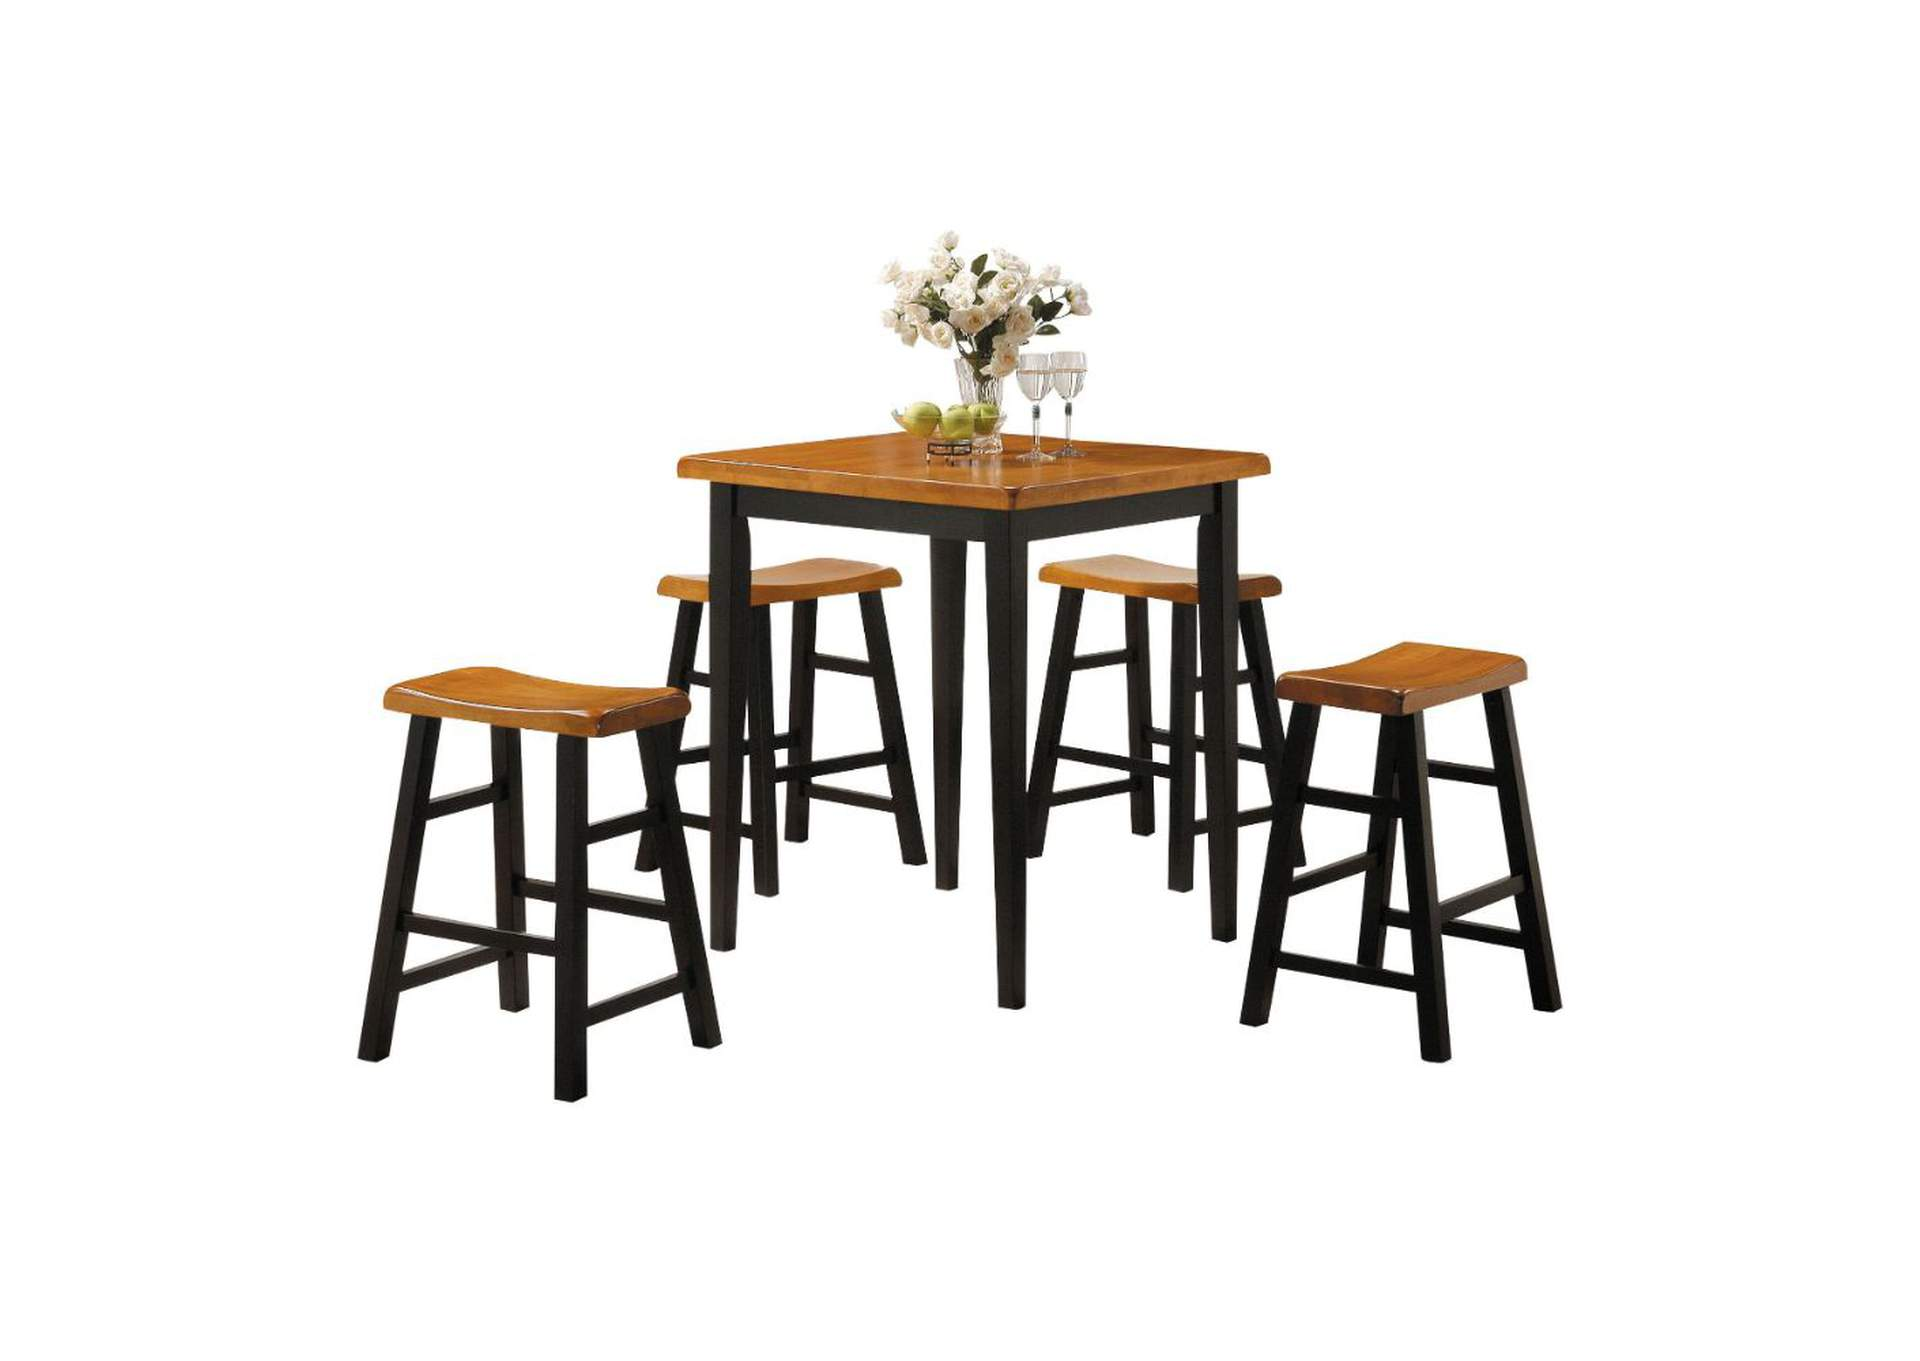 Gaucho Oak & Black 5 Piece Counter Height Dining Set,Acme